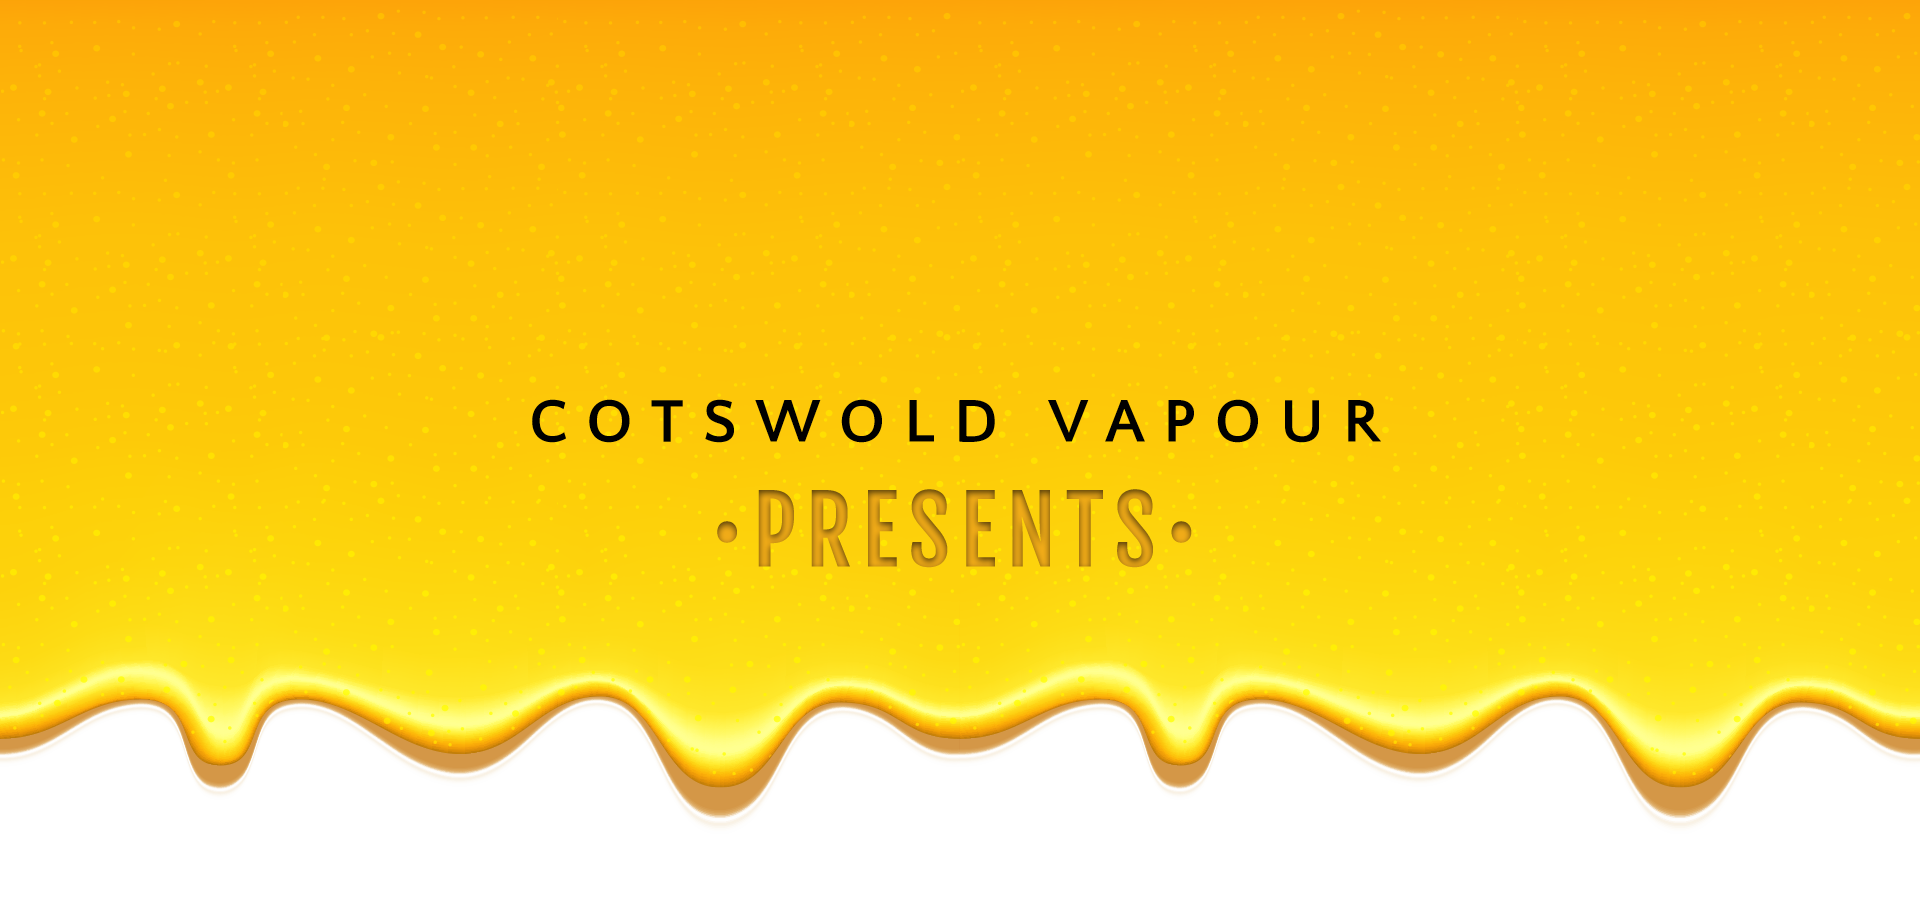 Cotswold Vapour: Presents